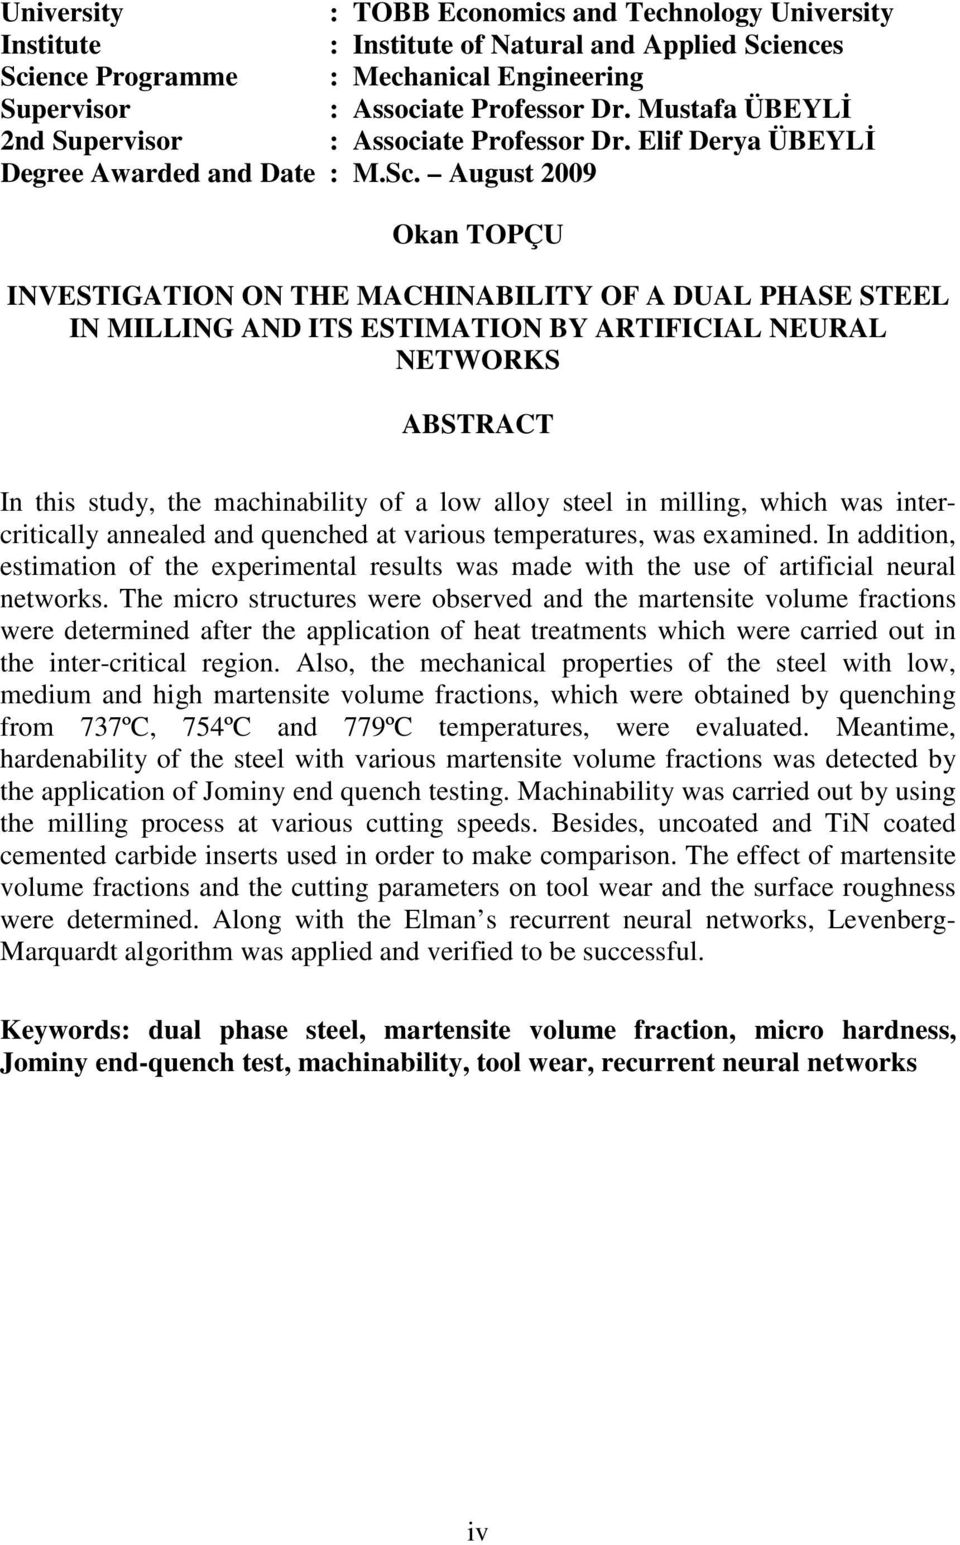 August 2009 Okan TOPÇU INVESTIGATION ON THE MACHINABILITY OF A DUAL PHASE STEEL IN MILLING AND ITS ESTIMATION BY ARTIFICIAL NEURAL NETWORKS ABSTRACT In this study, the machinability of a low alloy